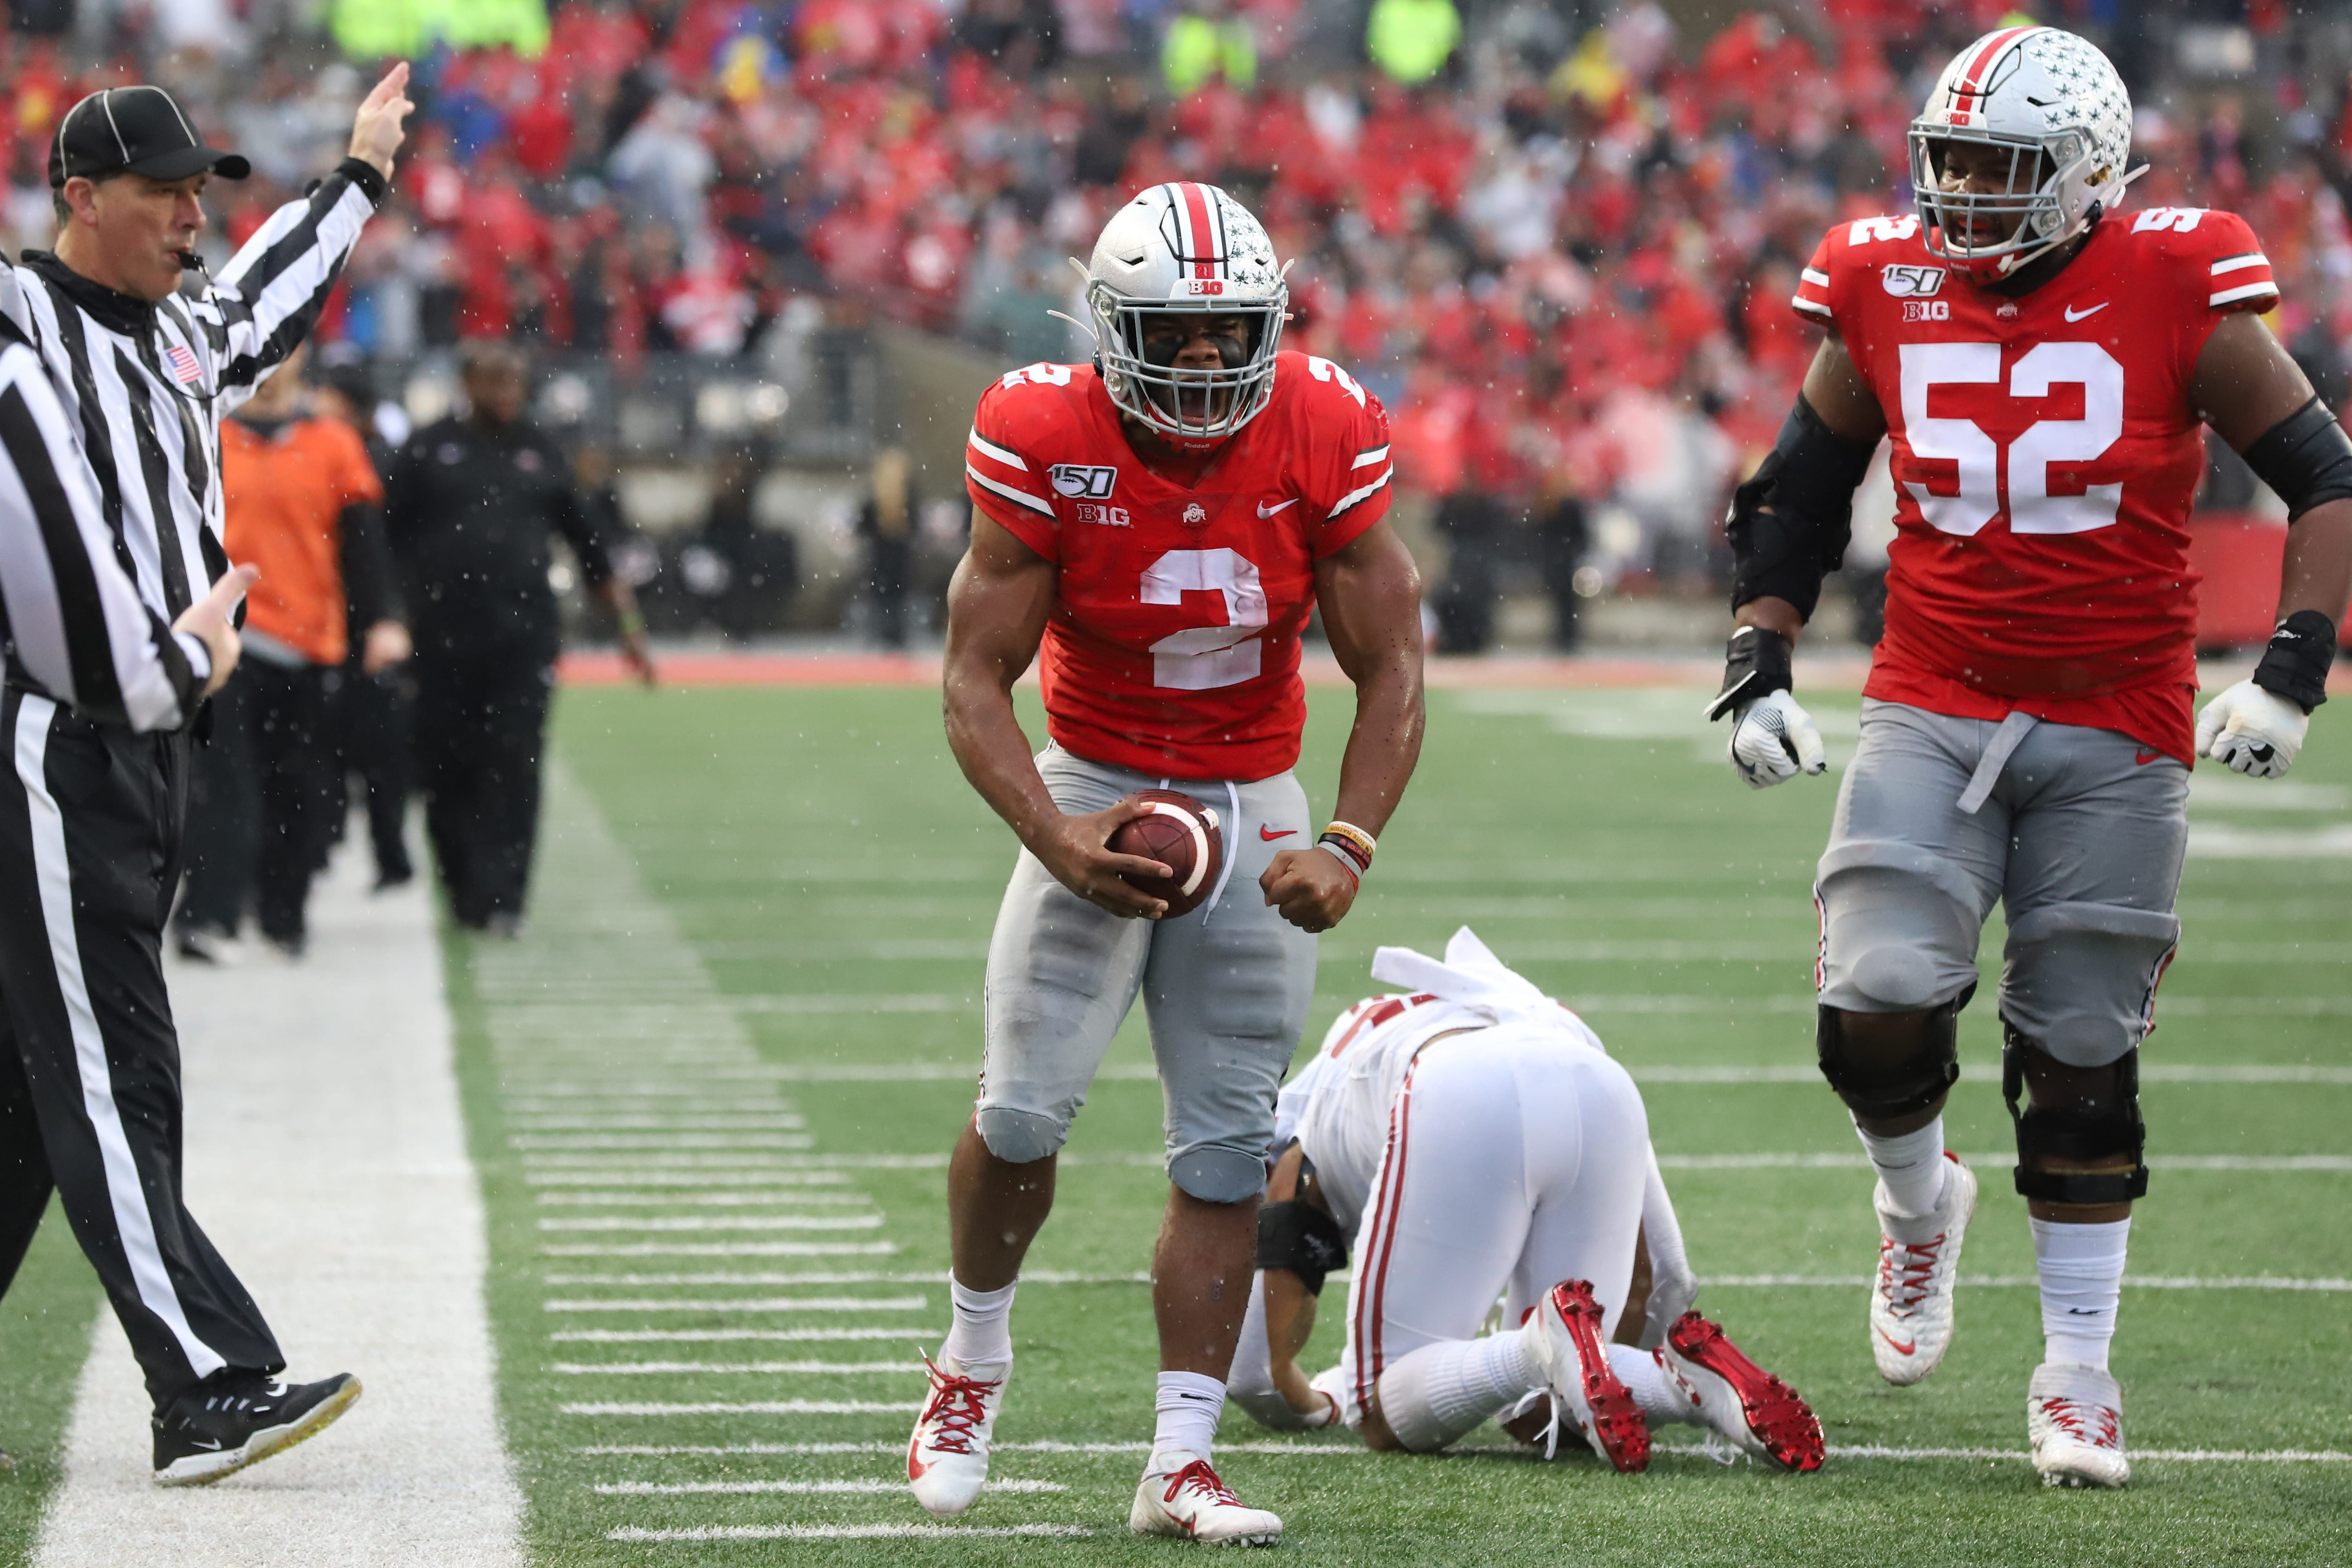 J.K. Dobbins Ohio State vs Wisconsin Week 9 2019